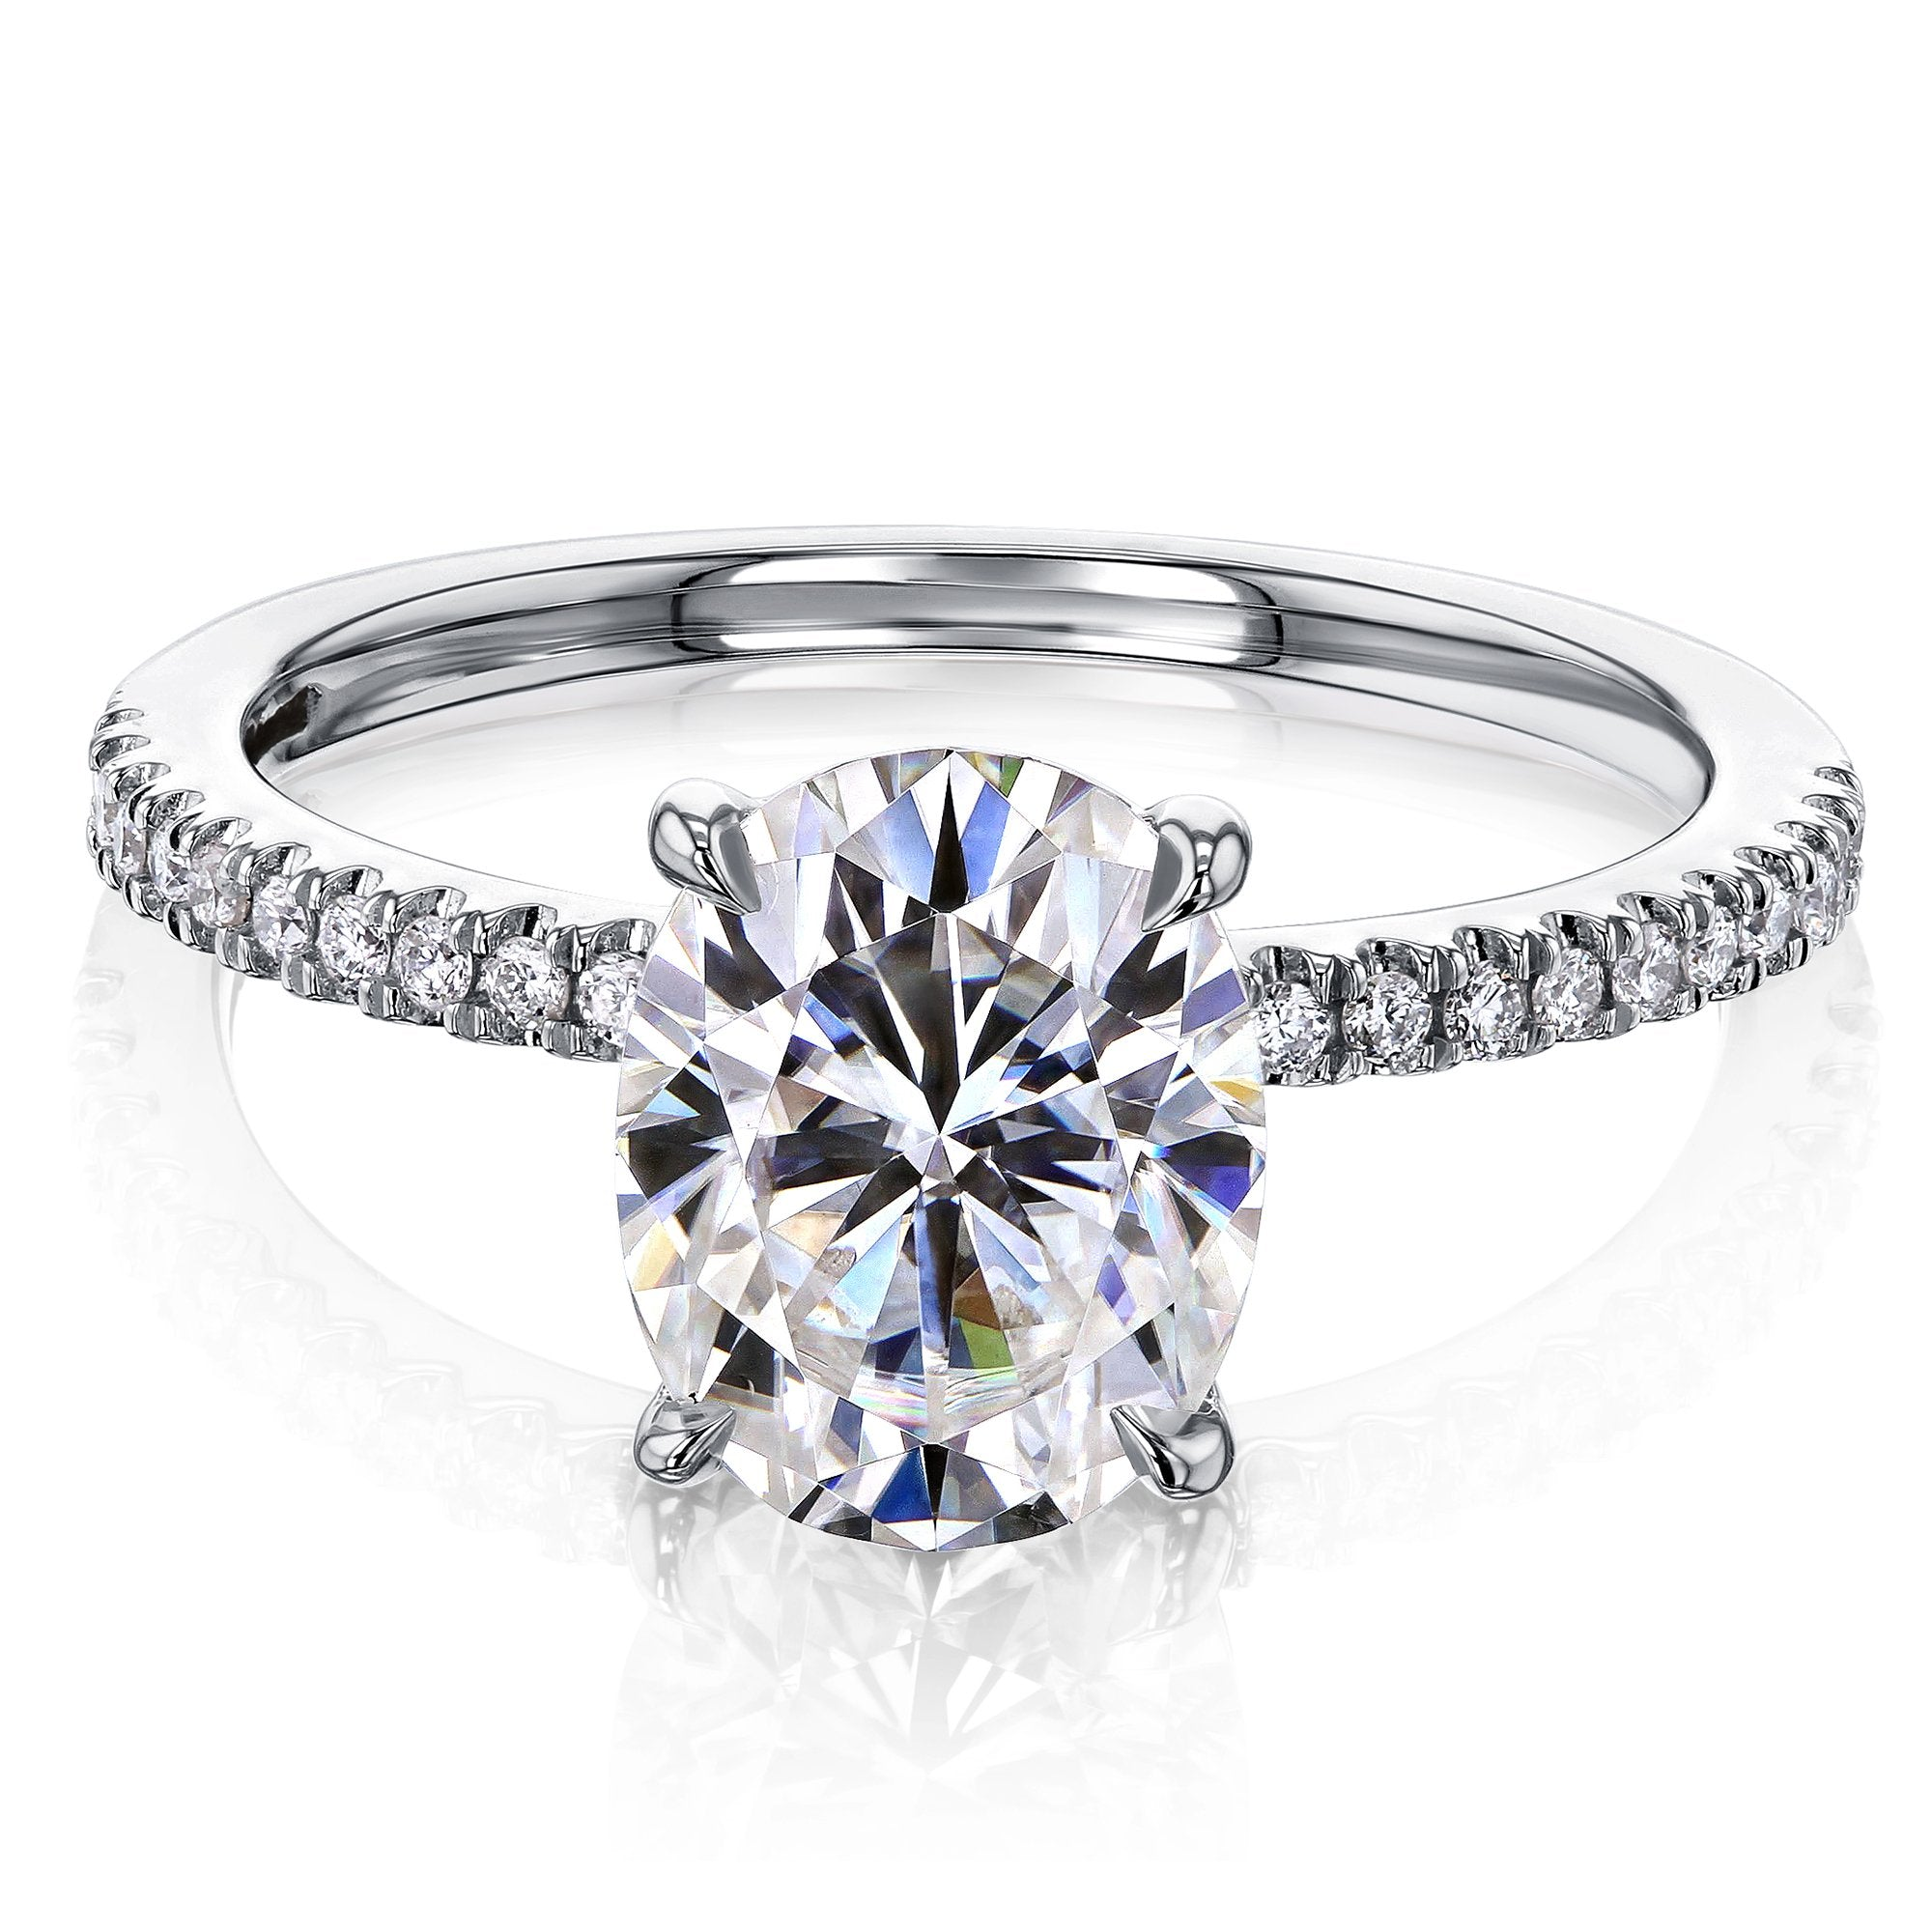 Promos 2.1ct Oval Forever One Moissanite & 1/10ct Natural Diamond - white-gold 7.0